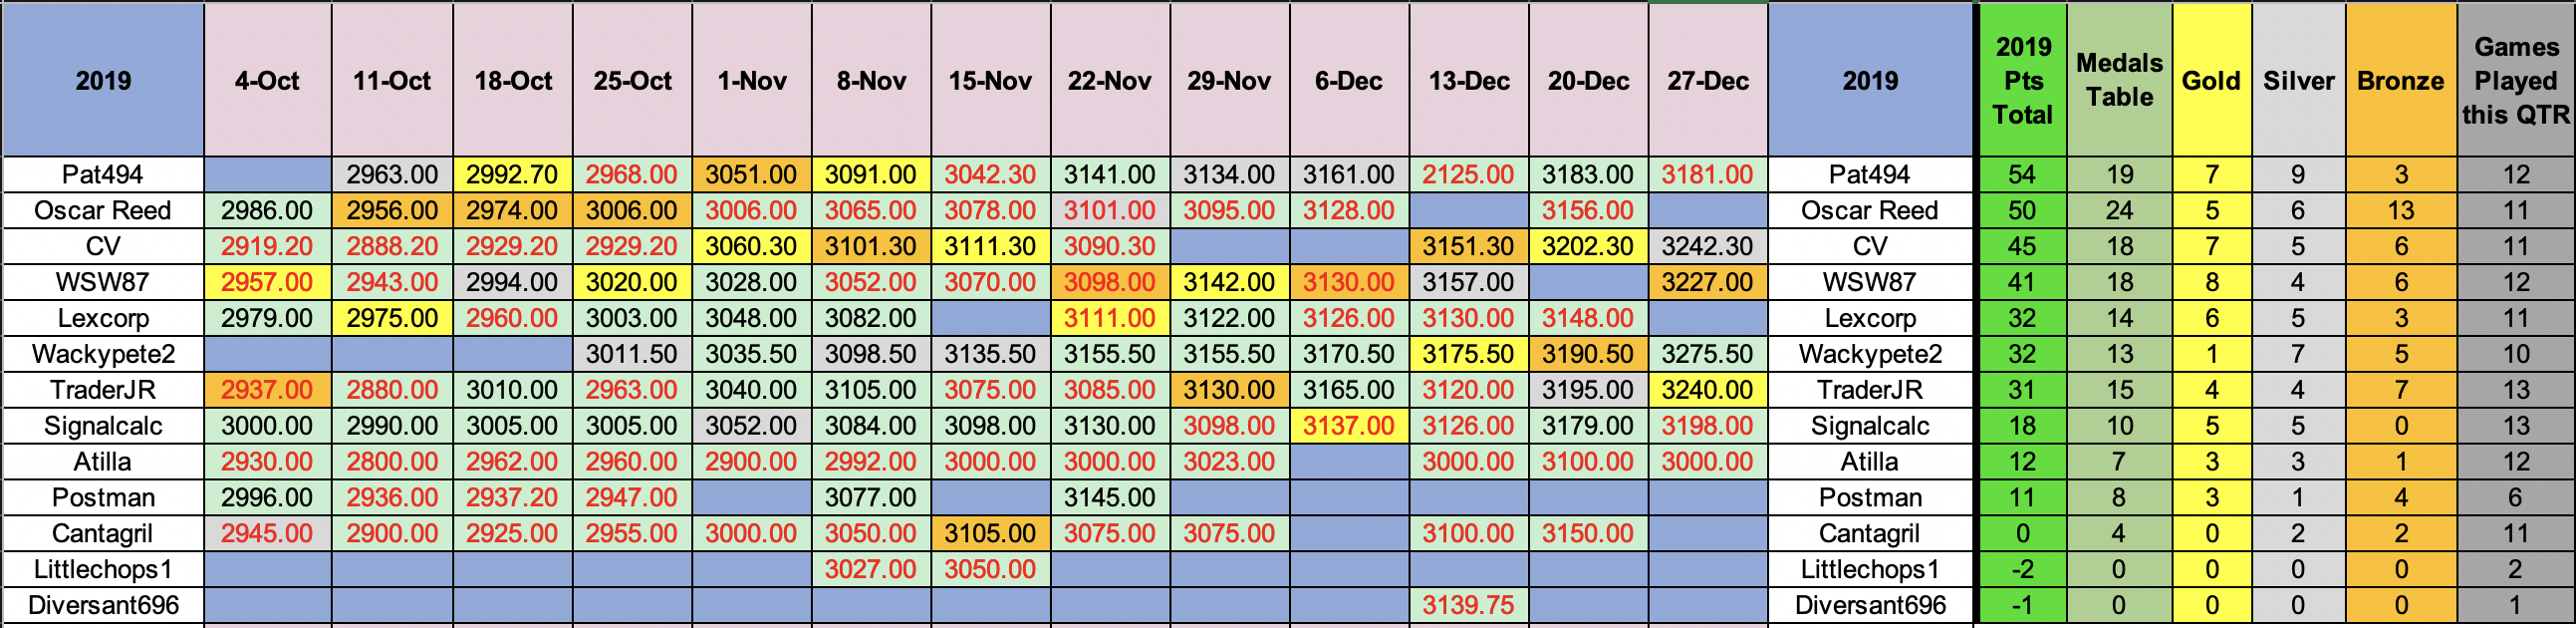 SP500 annual results 2019.png